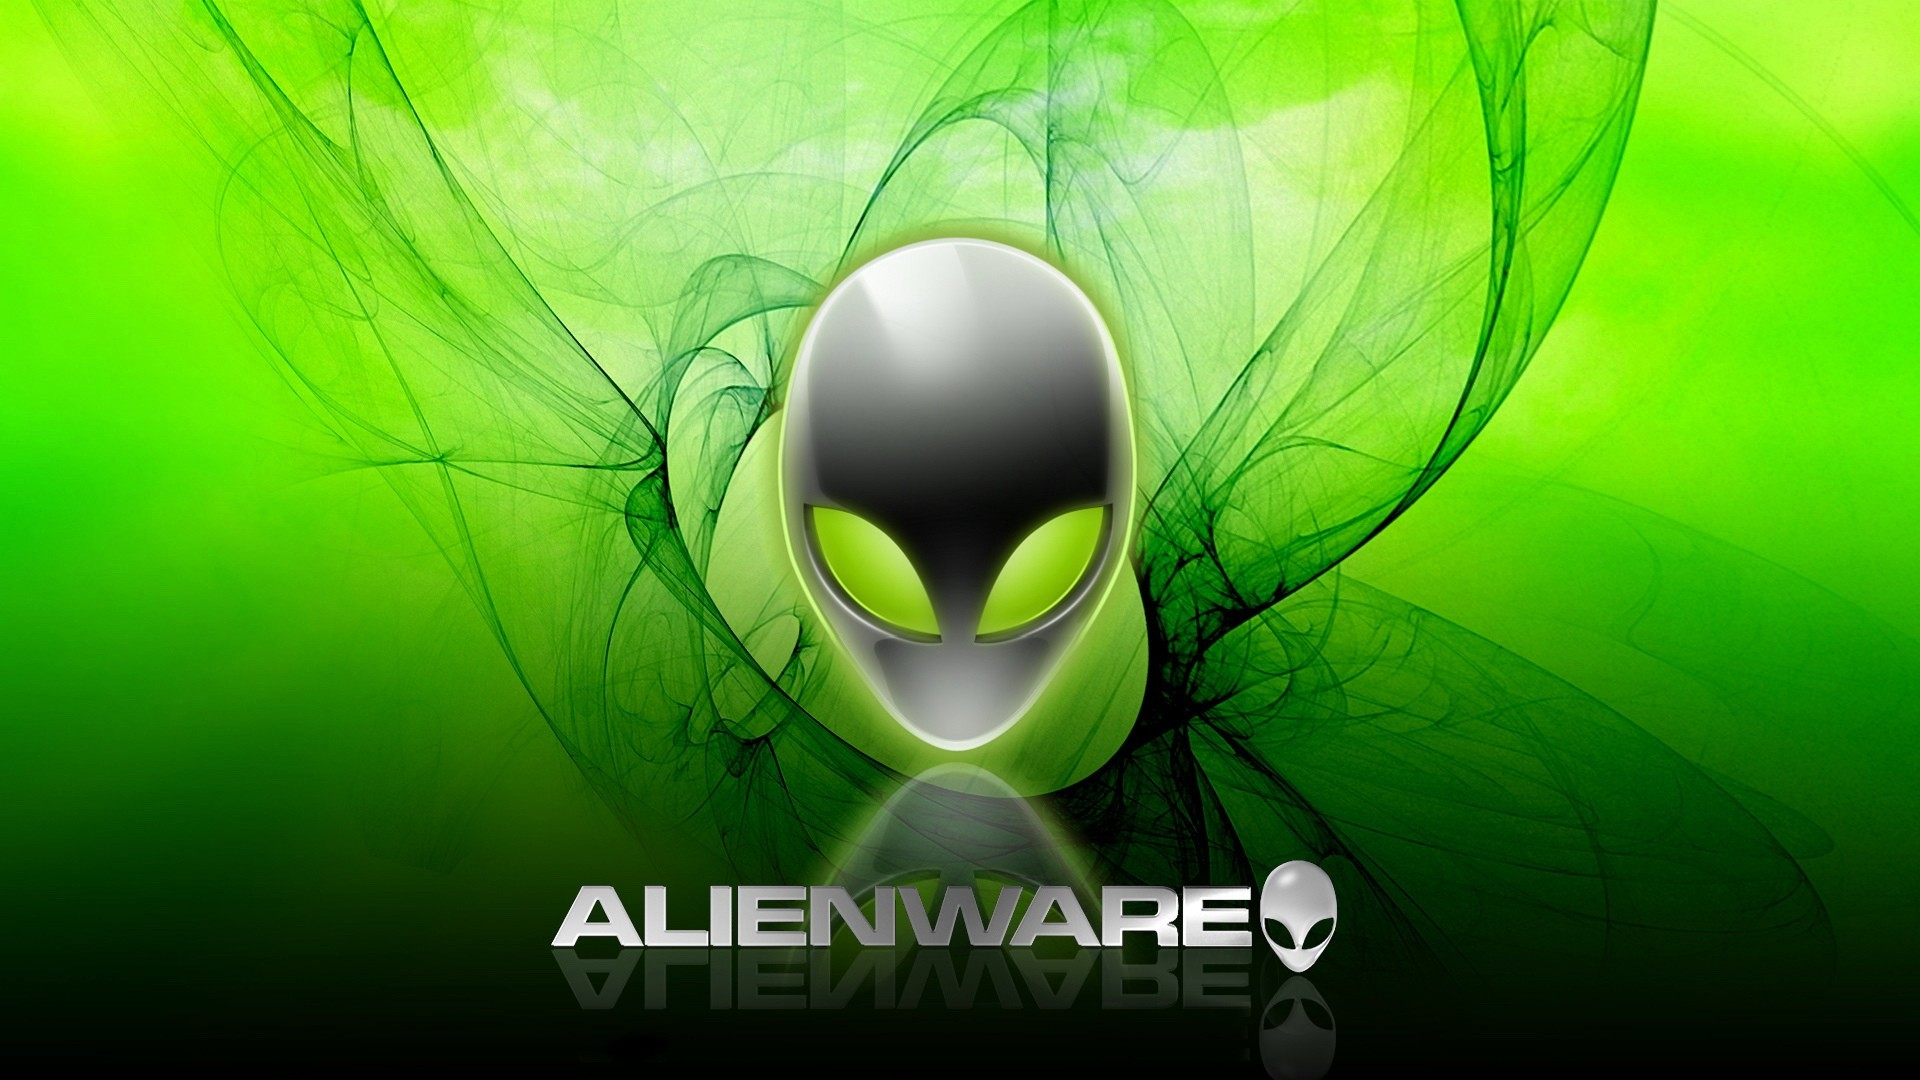 PC, Laptop Alienware Wallpapers, B.SCB